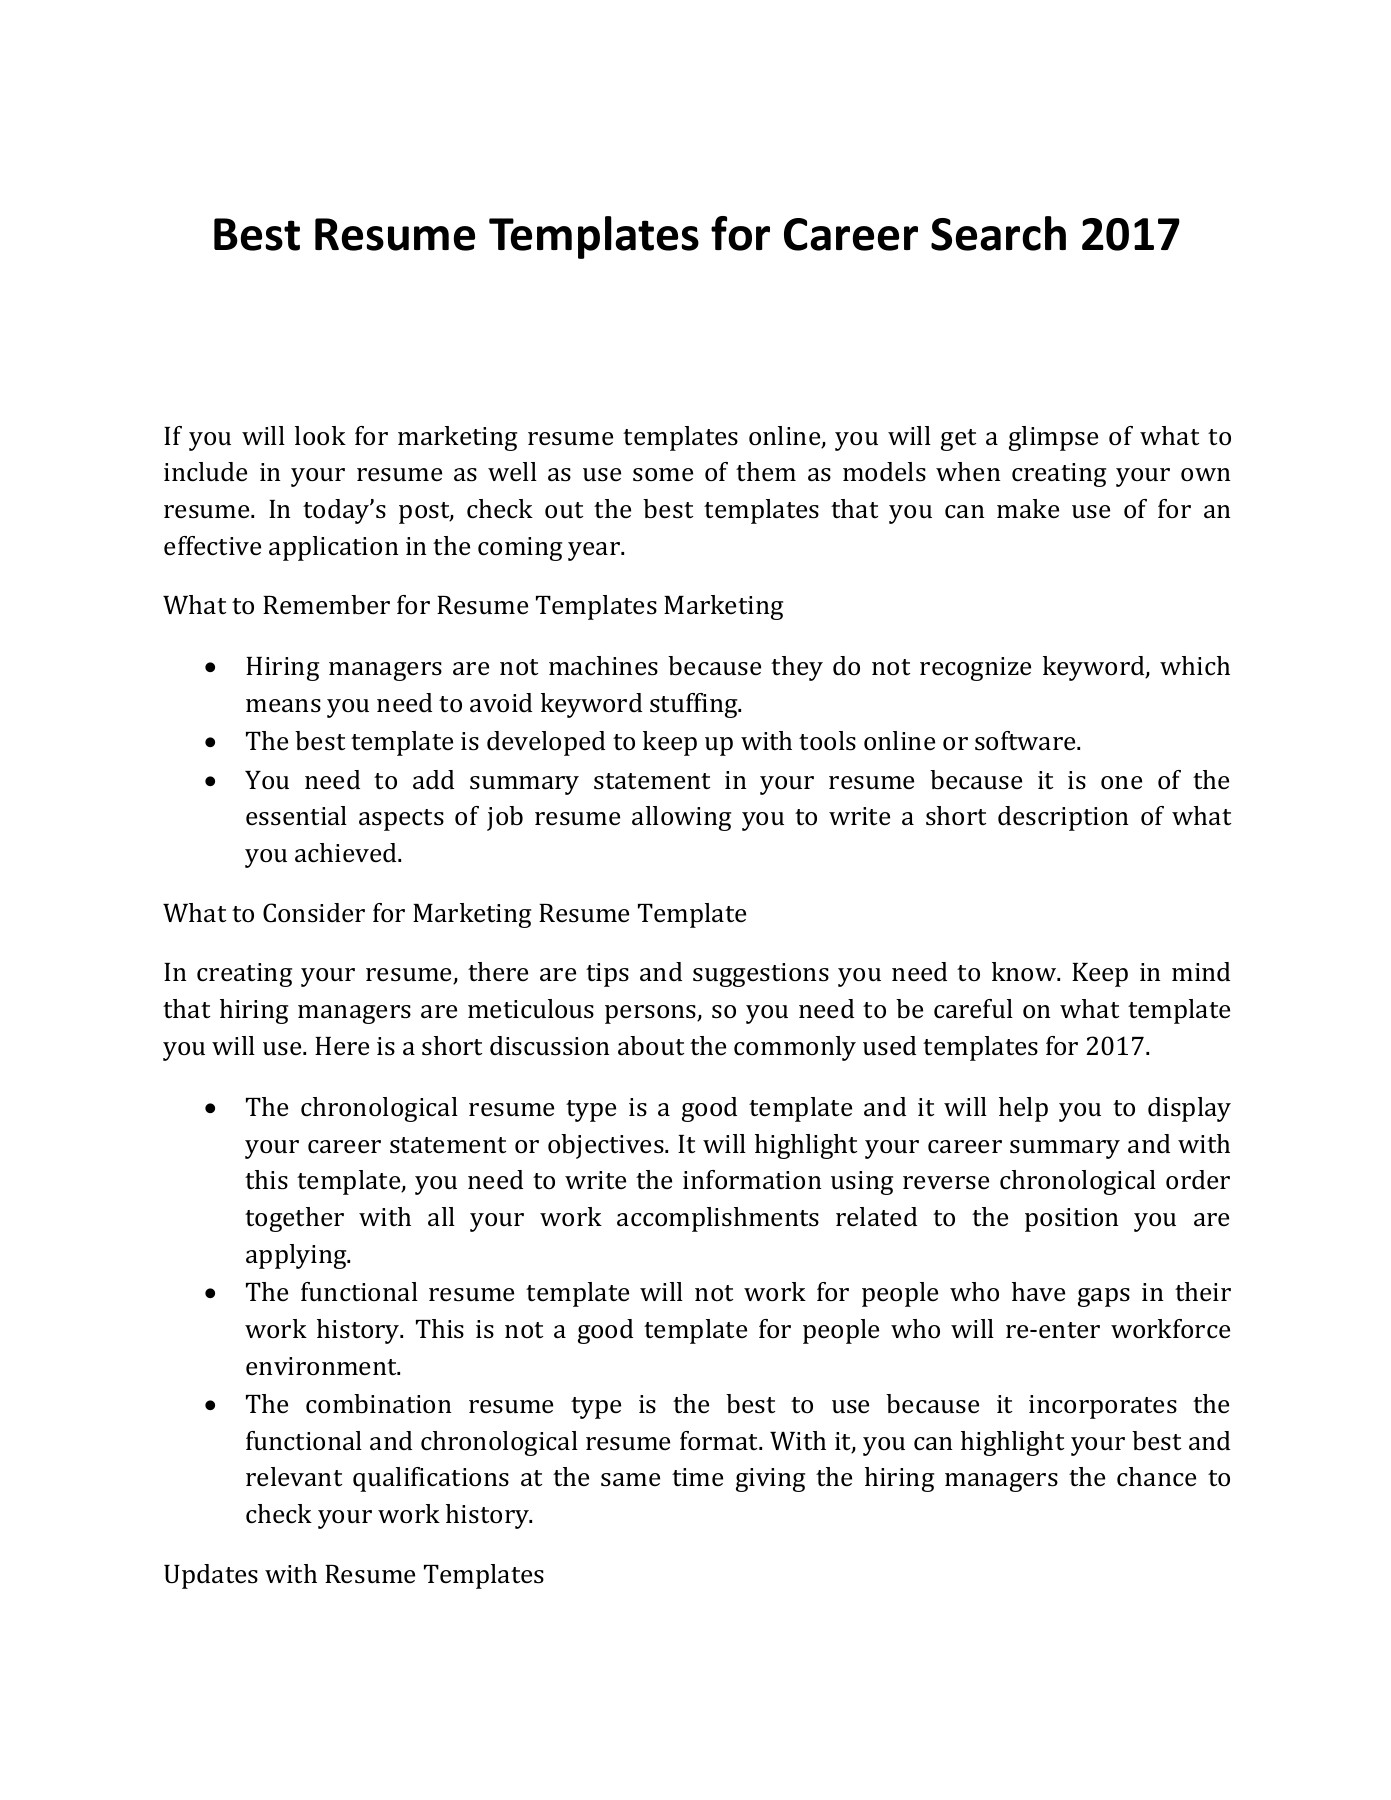 What Are the Best Resume Templates for Career Search 2017 ...